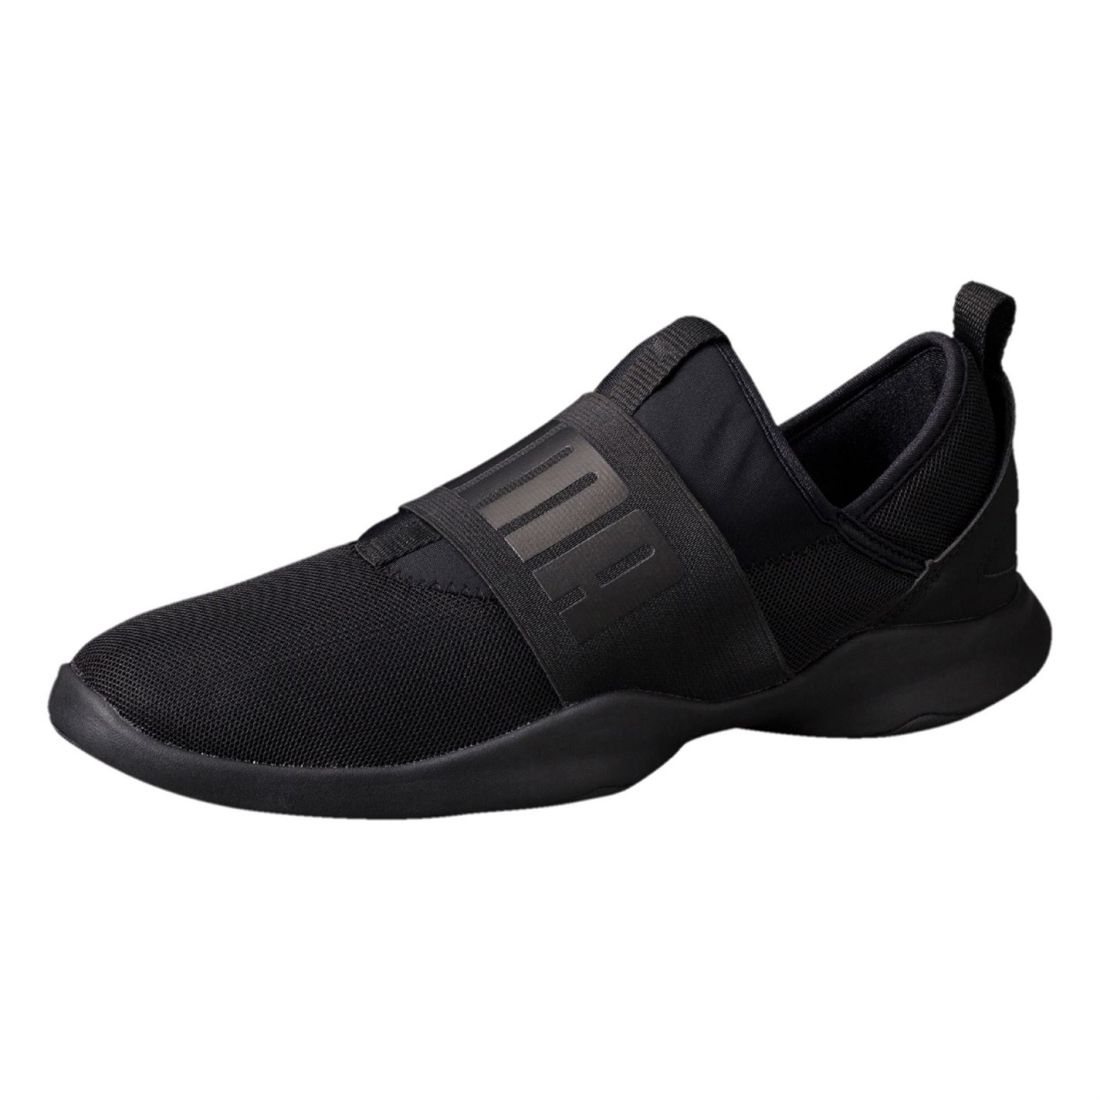 Puma Womens Dare Trainers Slip On Strap Seamless Workout  2abf09d42